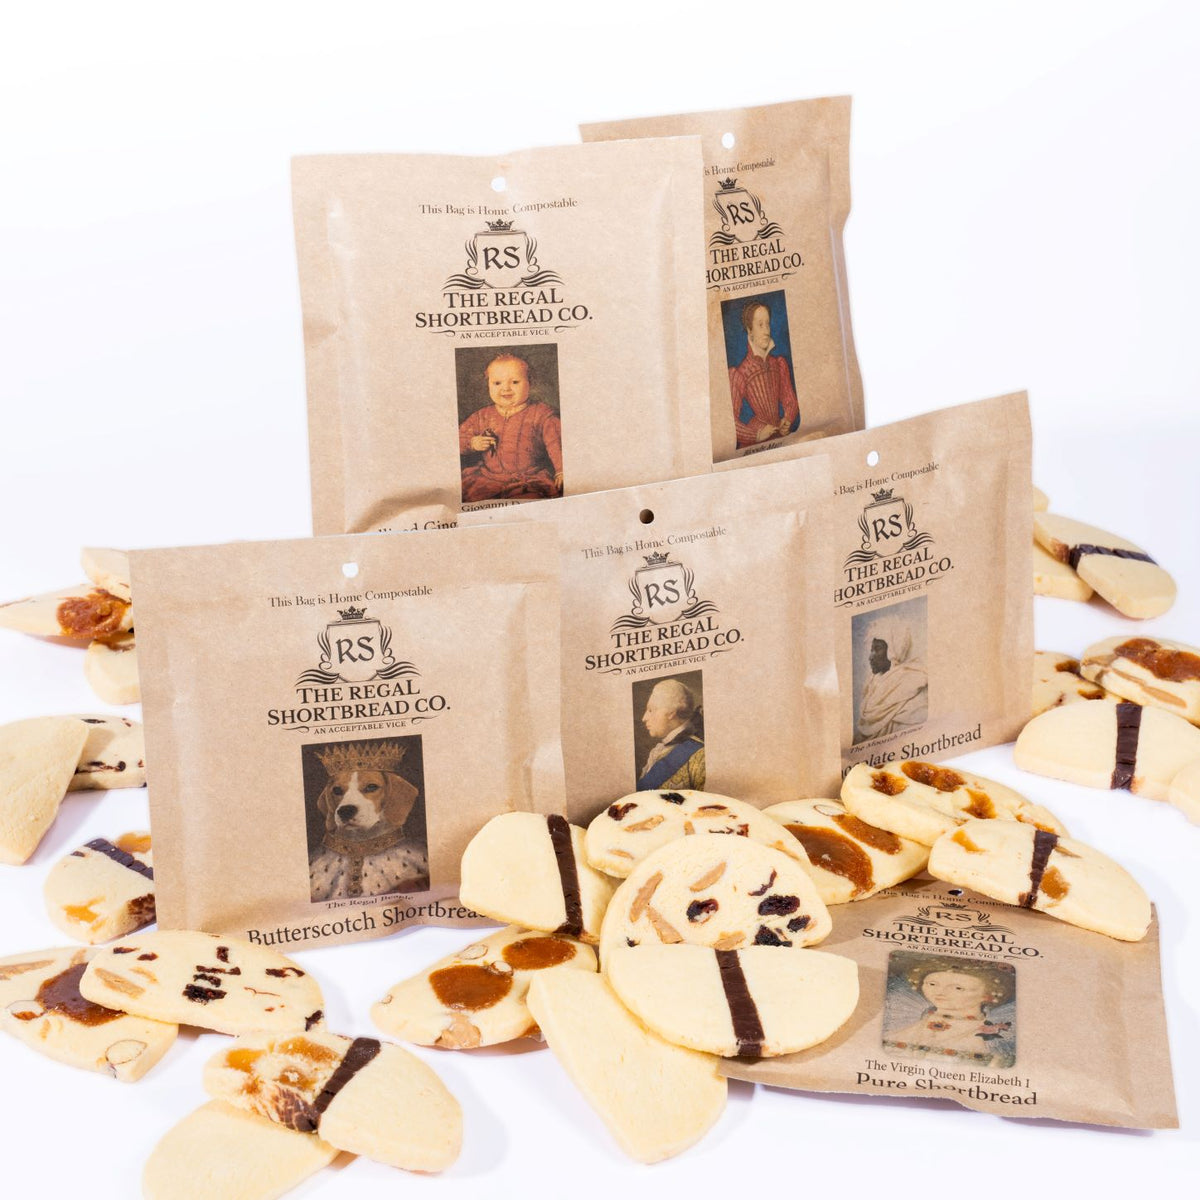 Packaged - Shortbread